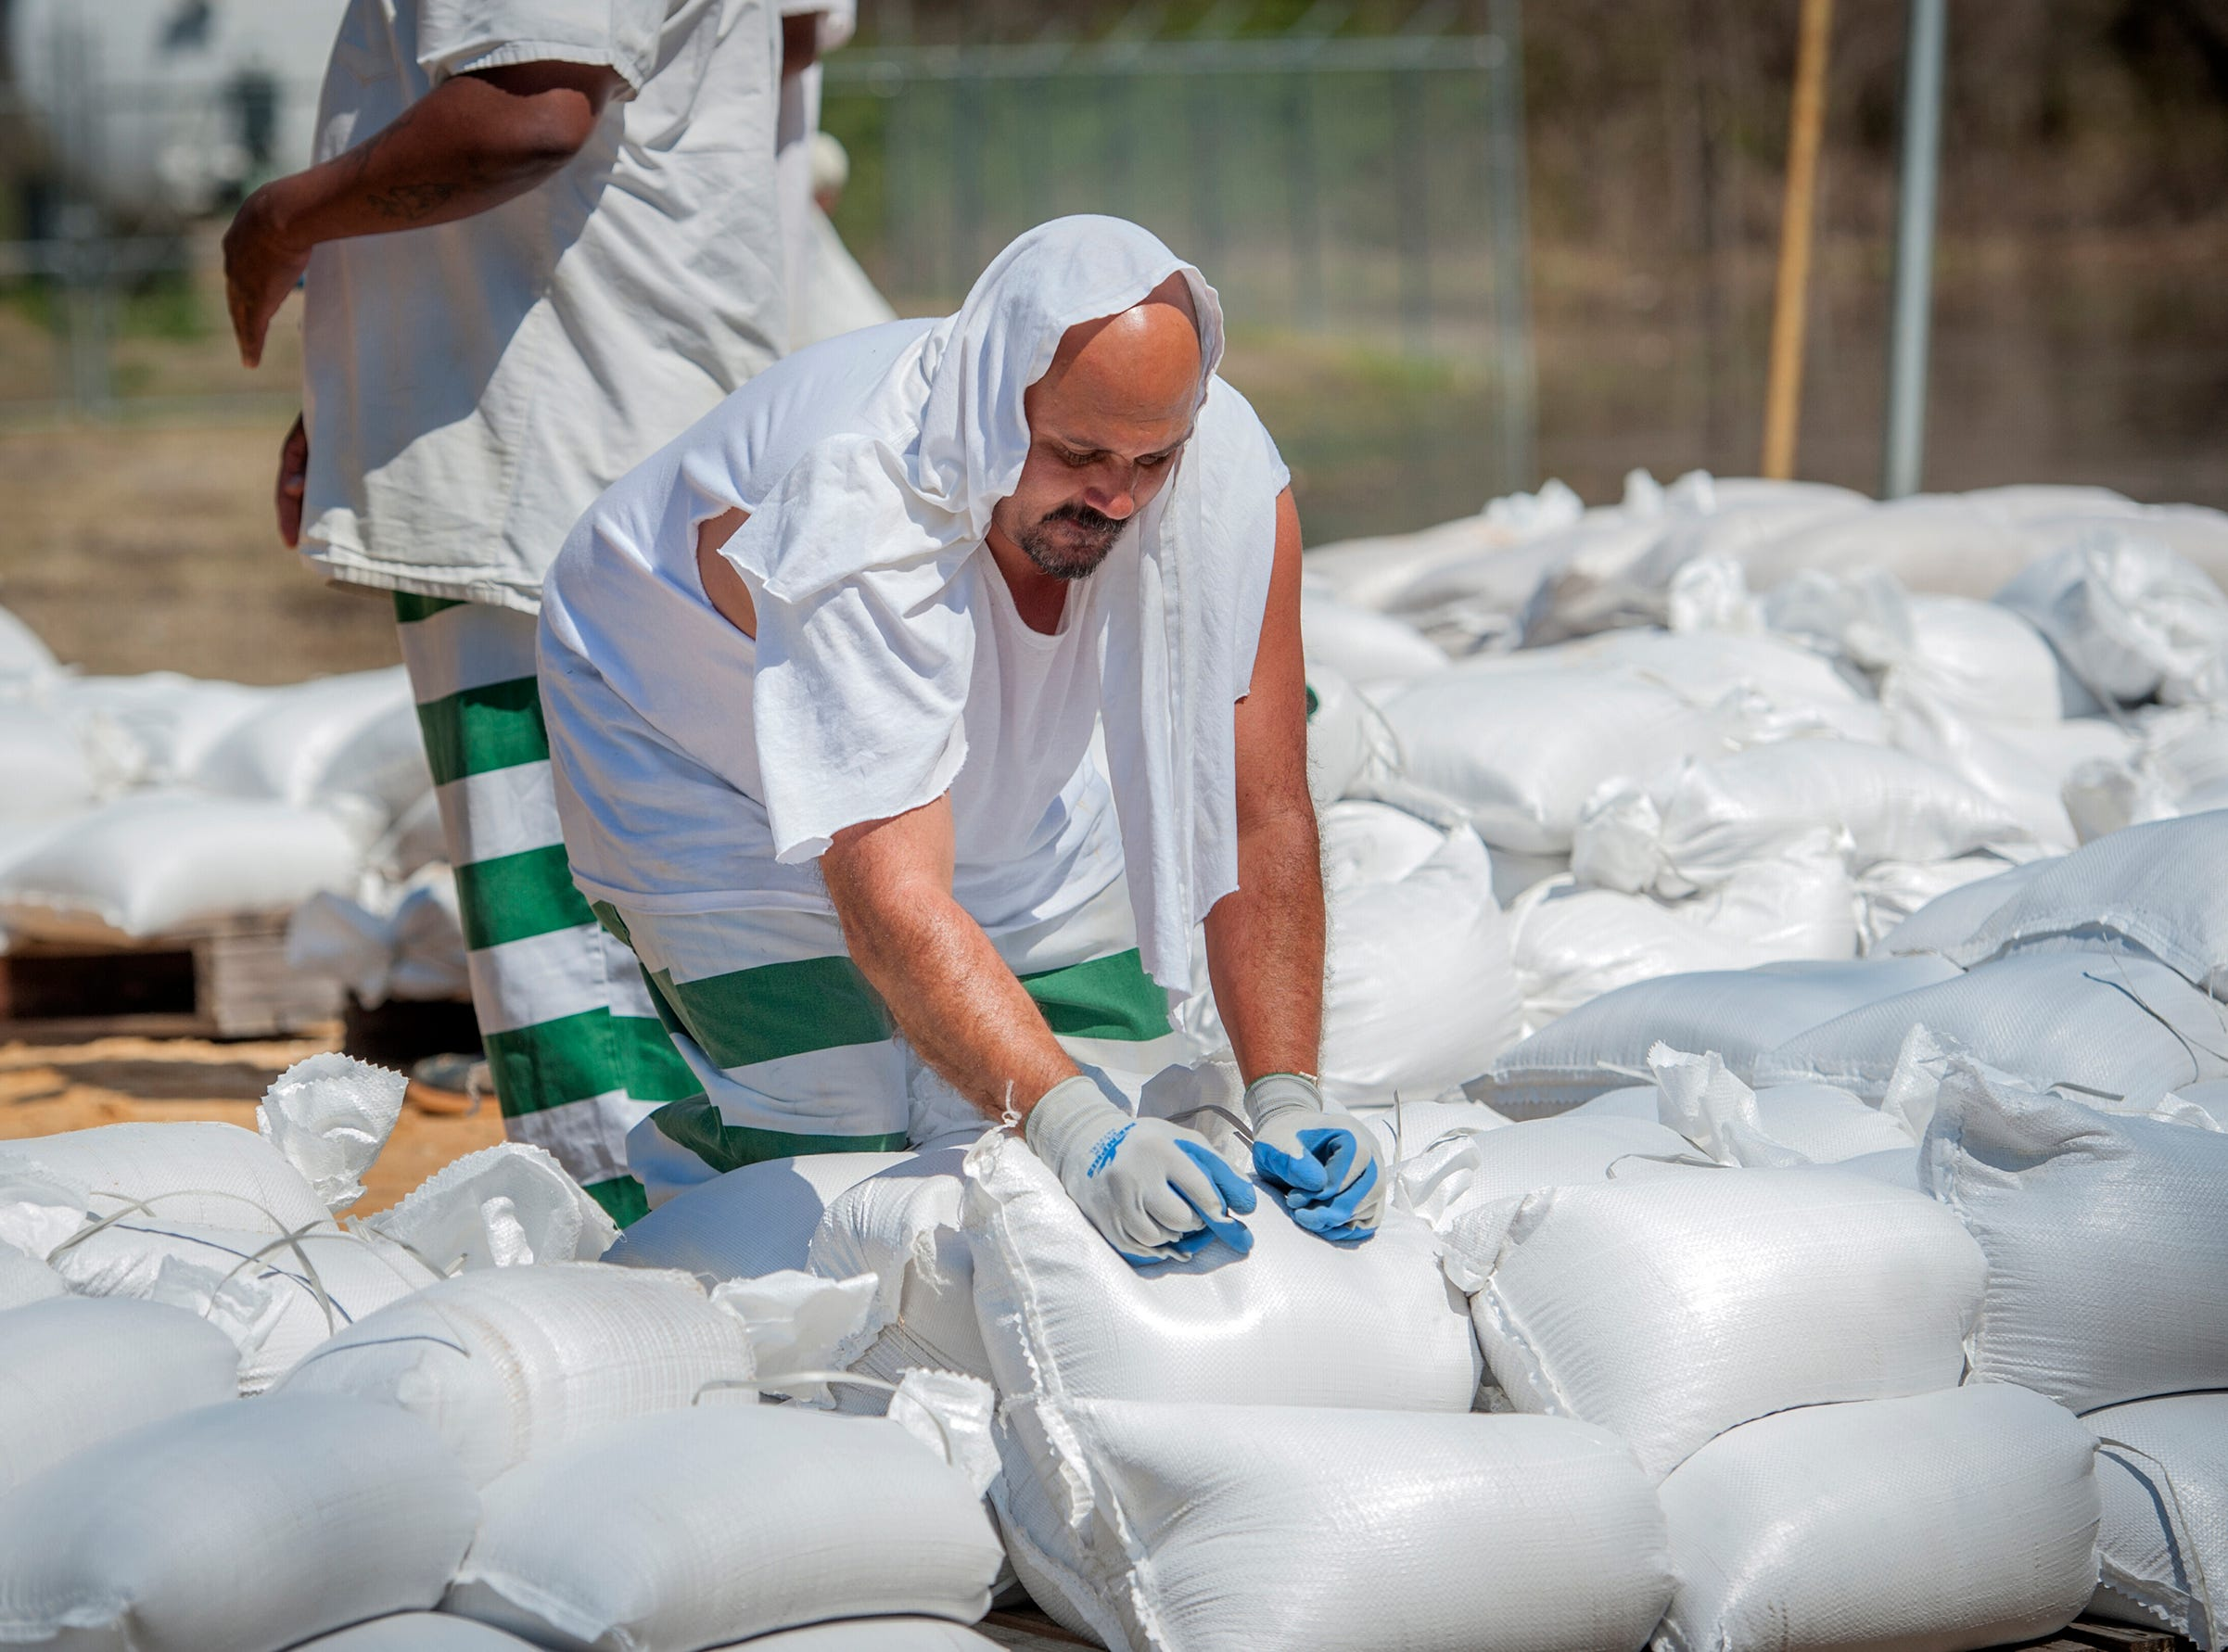 A state inmate, residing in the Issaquena County Correctional Facility, fills sandbags to help battle flooding in the county.